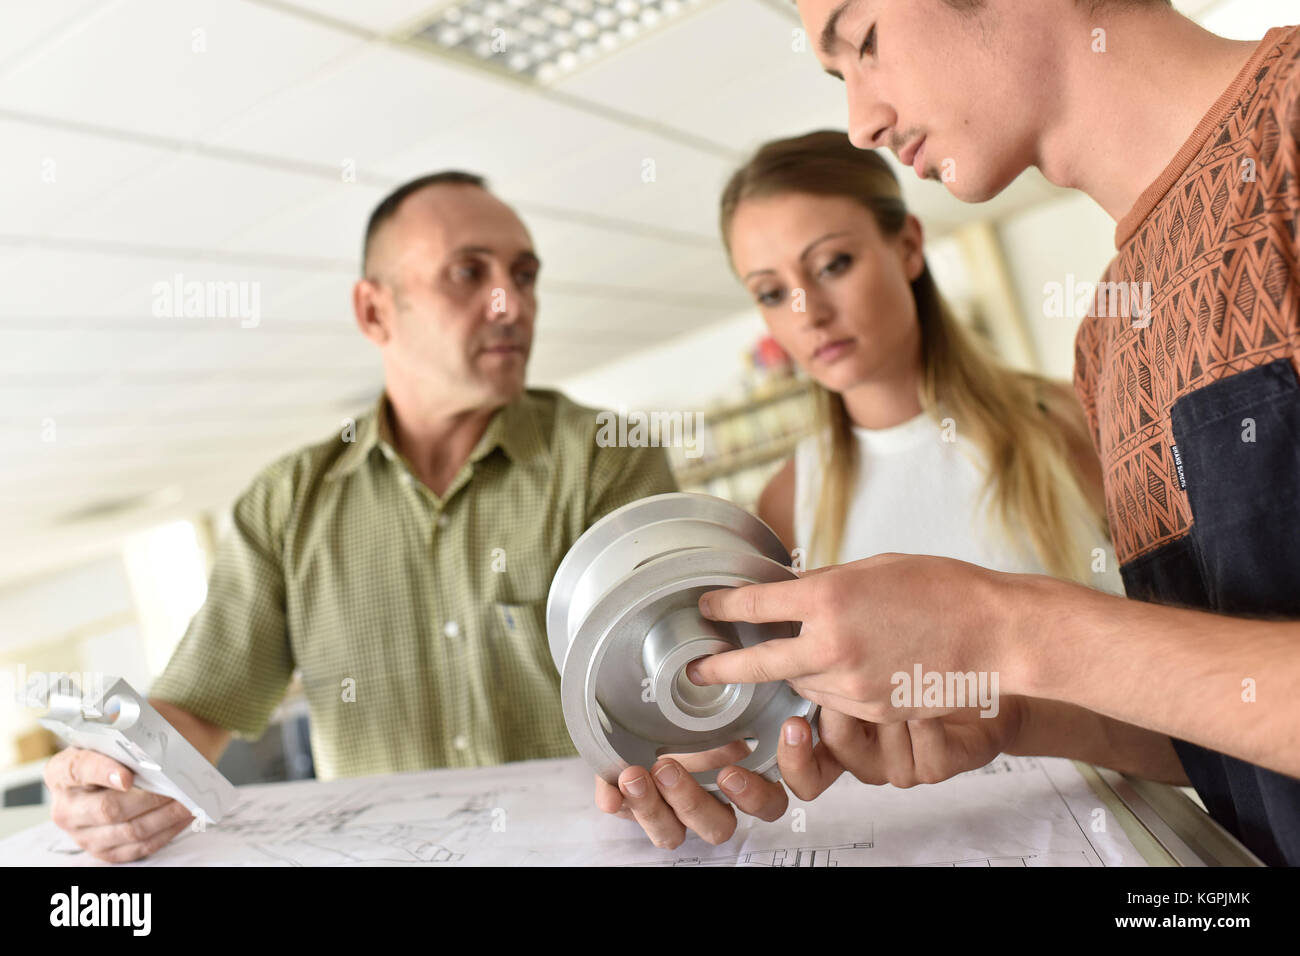 Young people in engineering training class - Stock Image